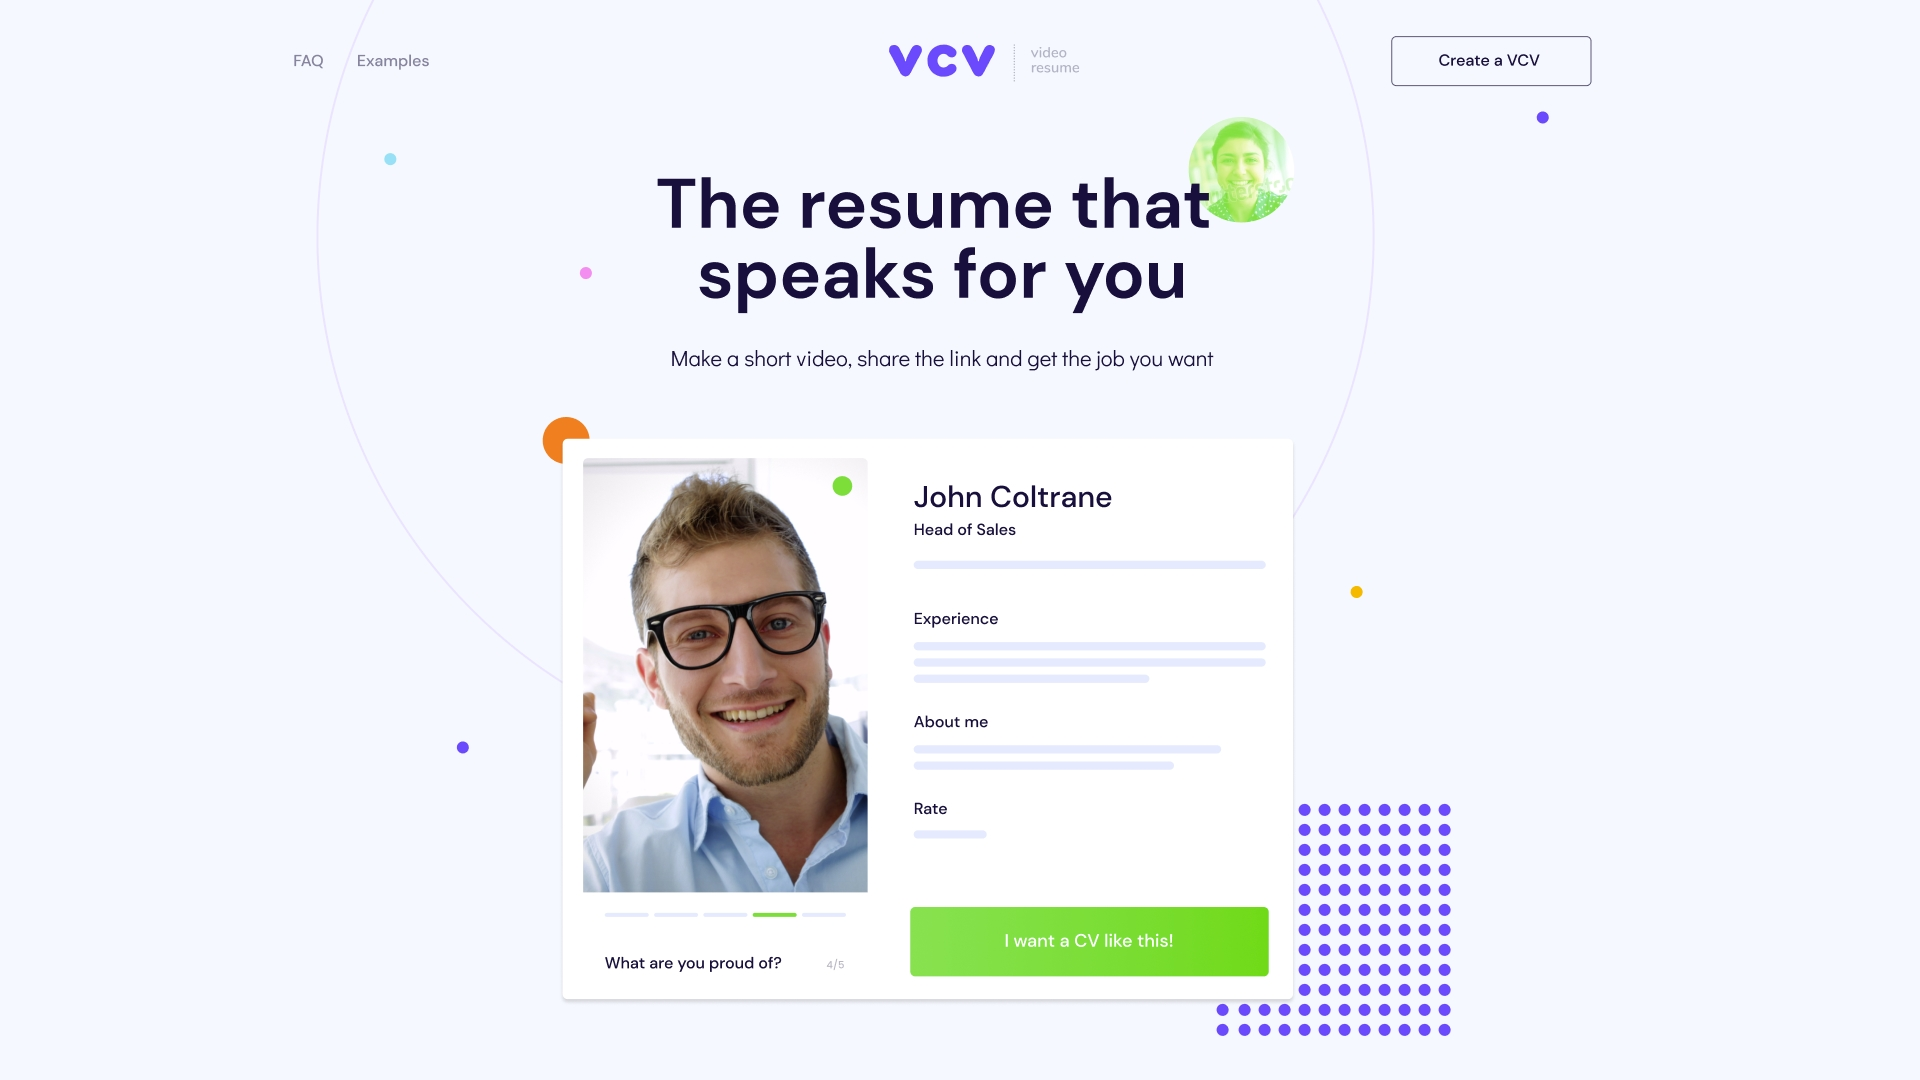 the alternative design for VCV website by Embacy